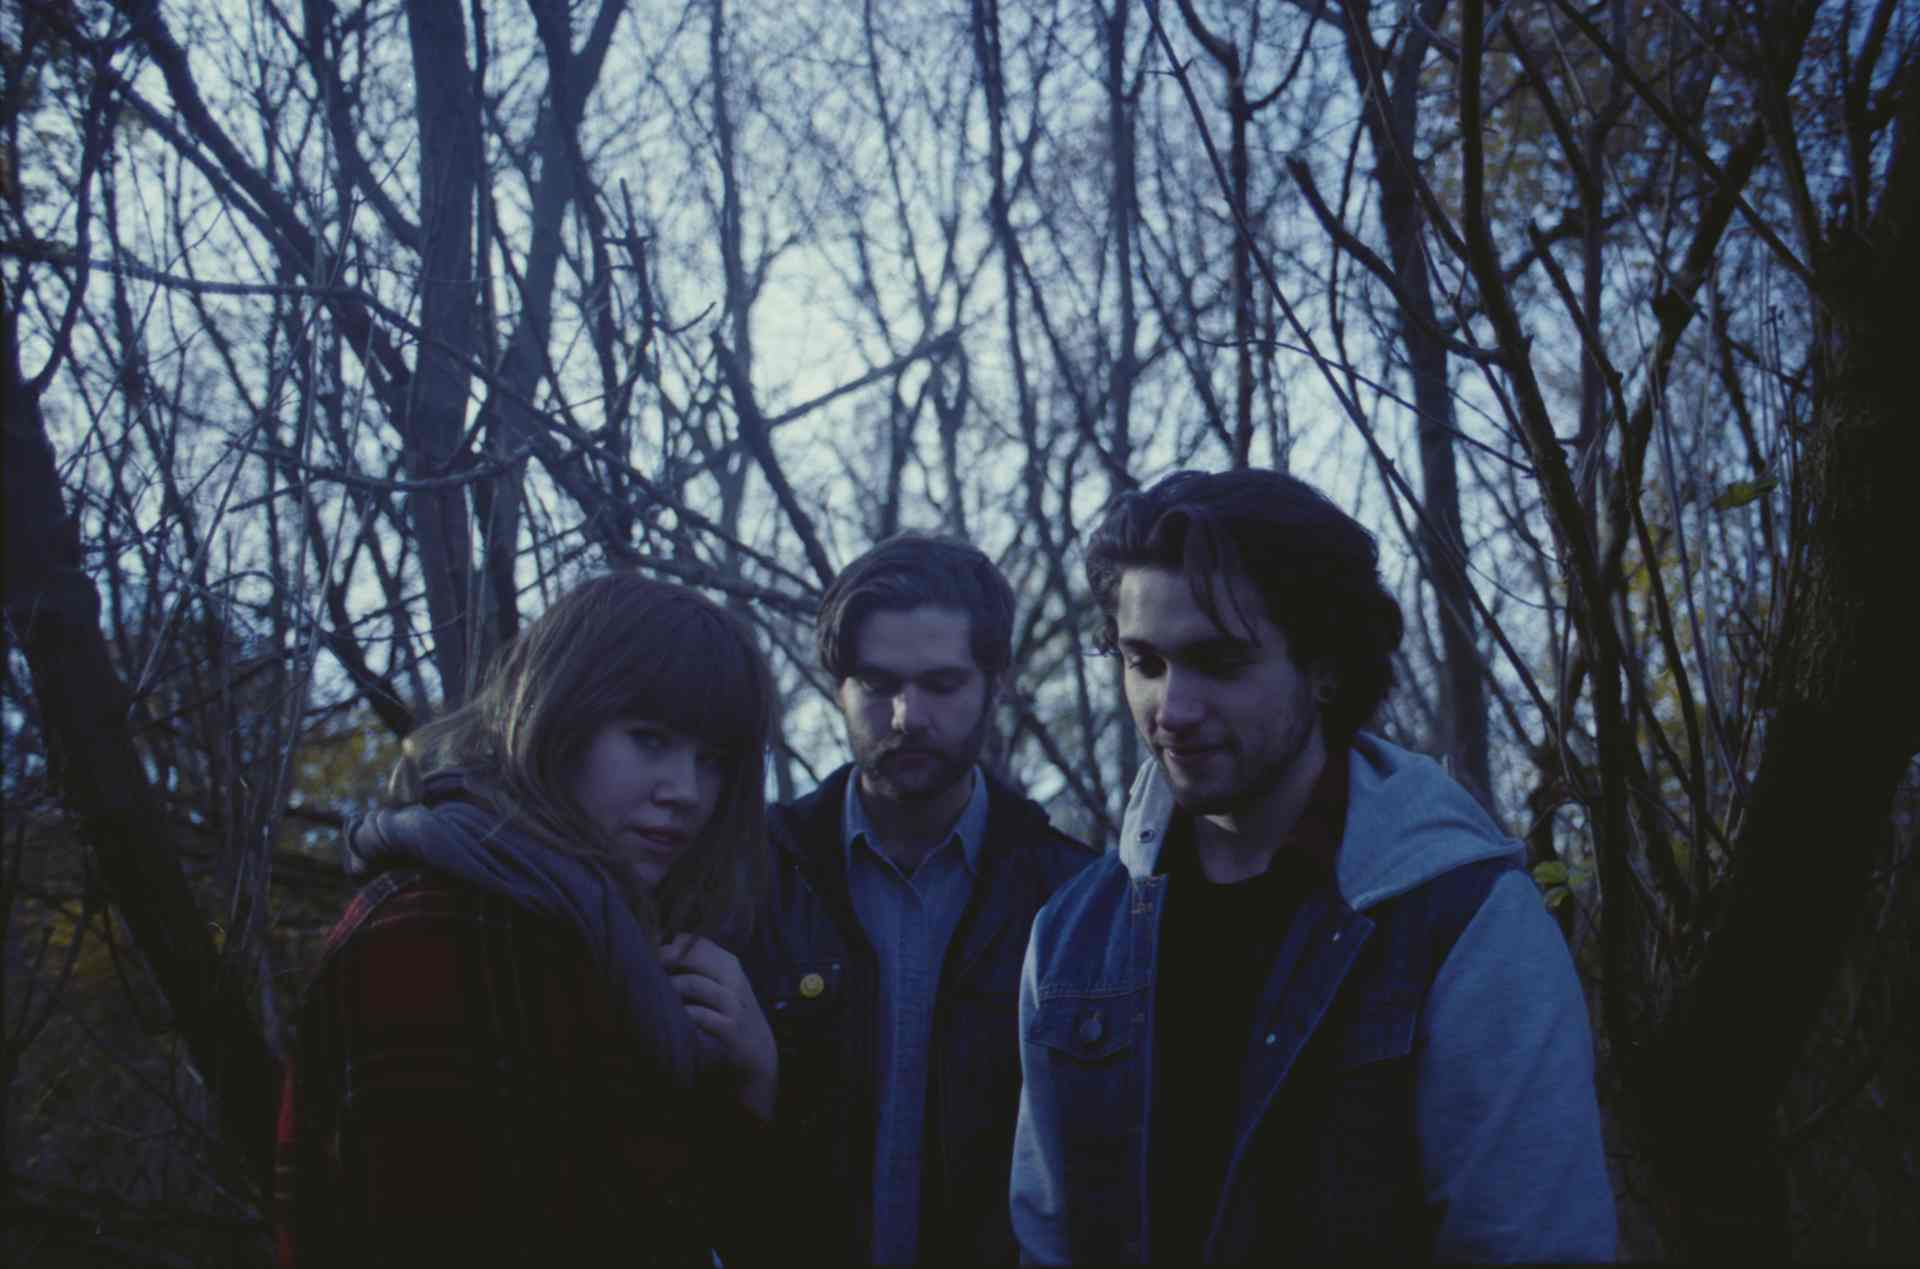 Little Coyote Promo Photo - 1.3MB